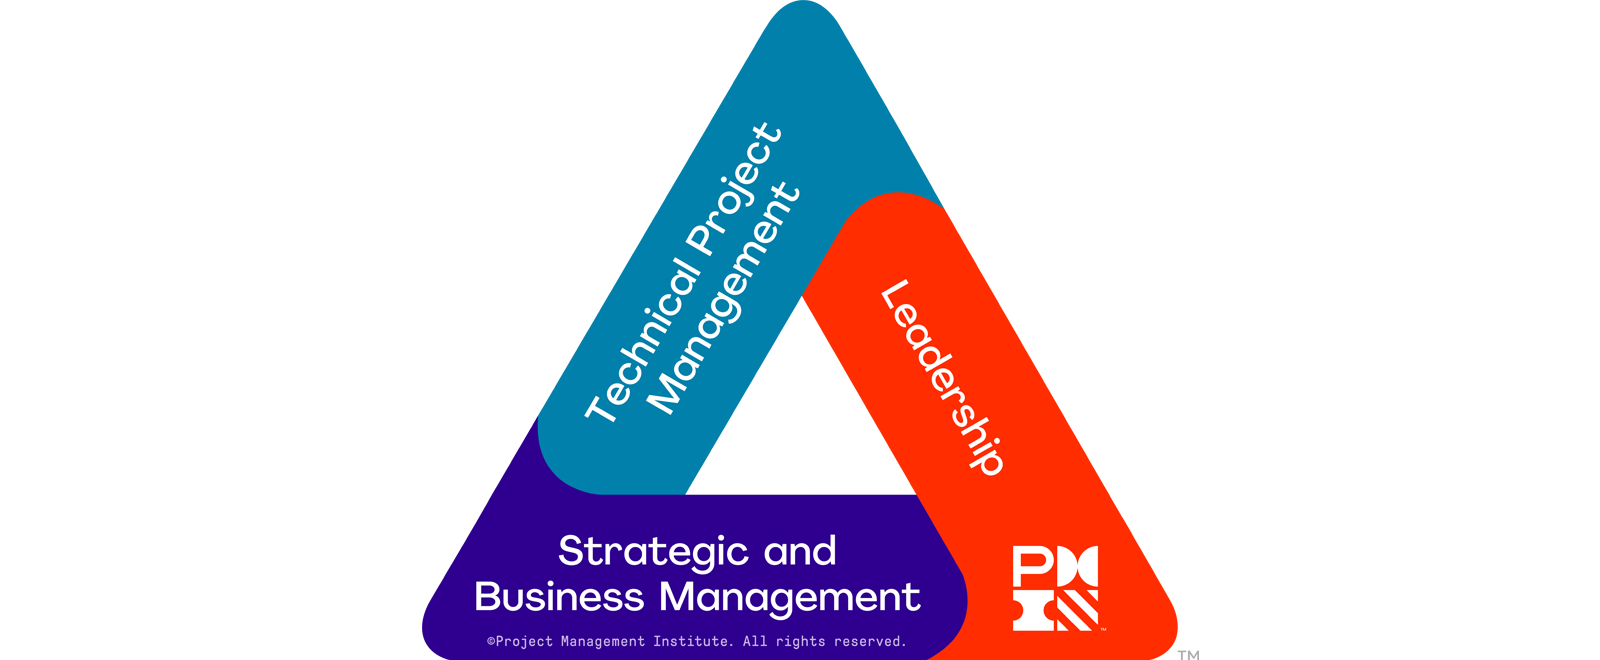 the-pmi-talent-triangle.png